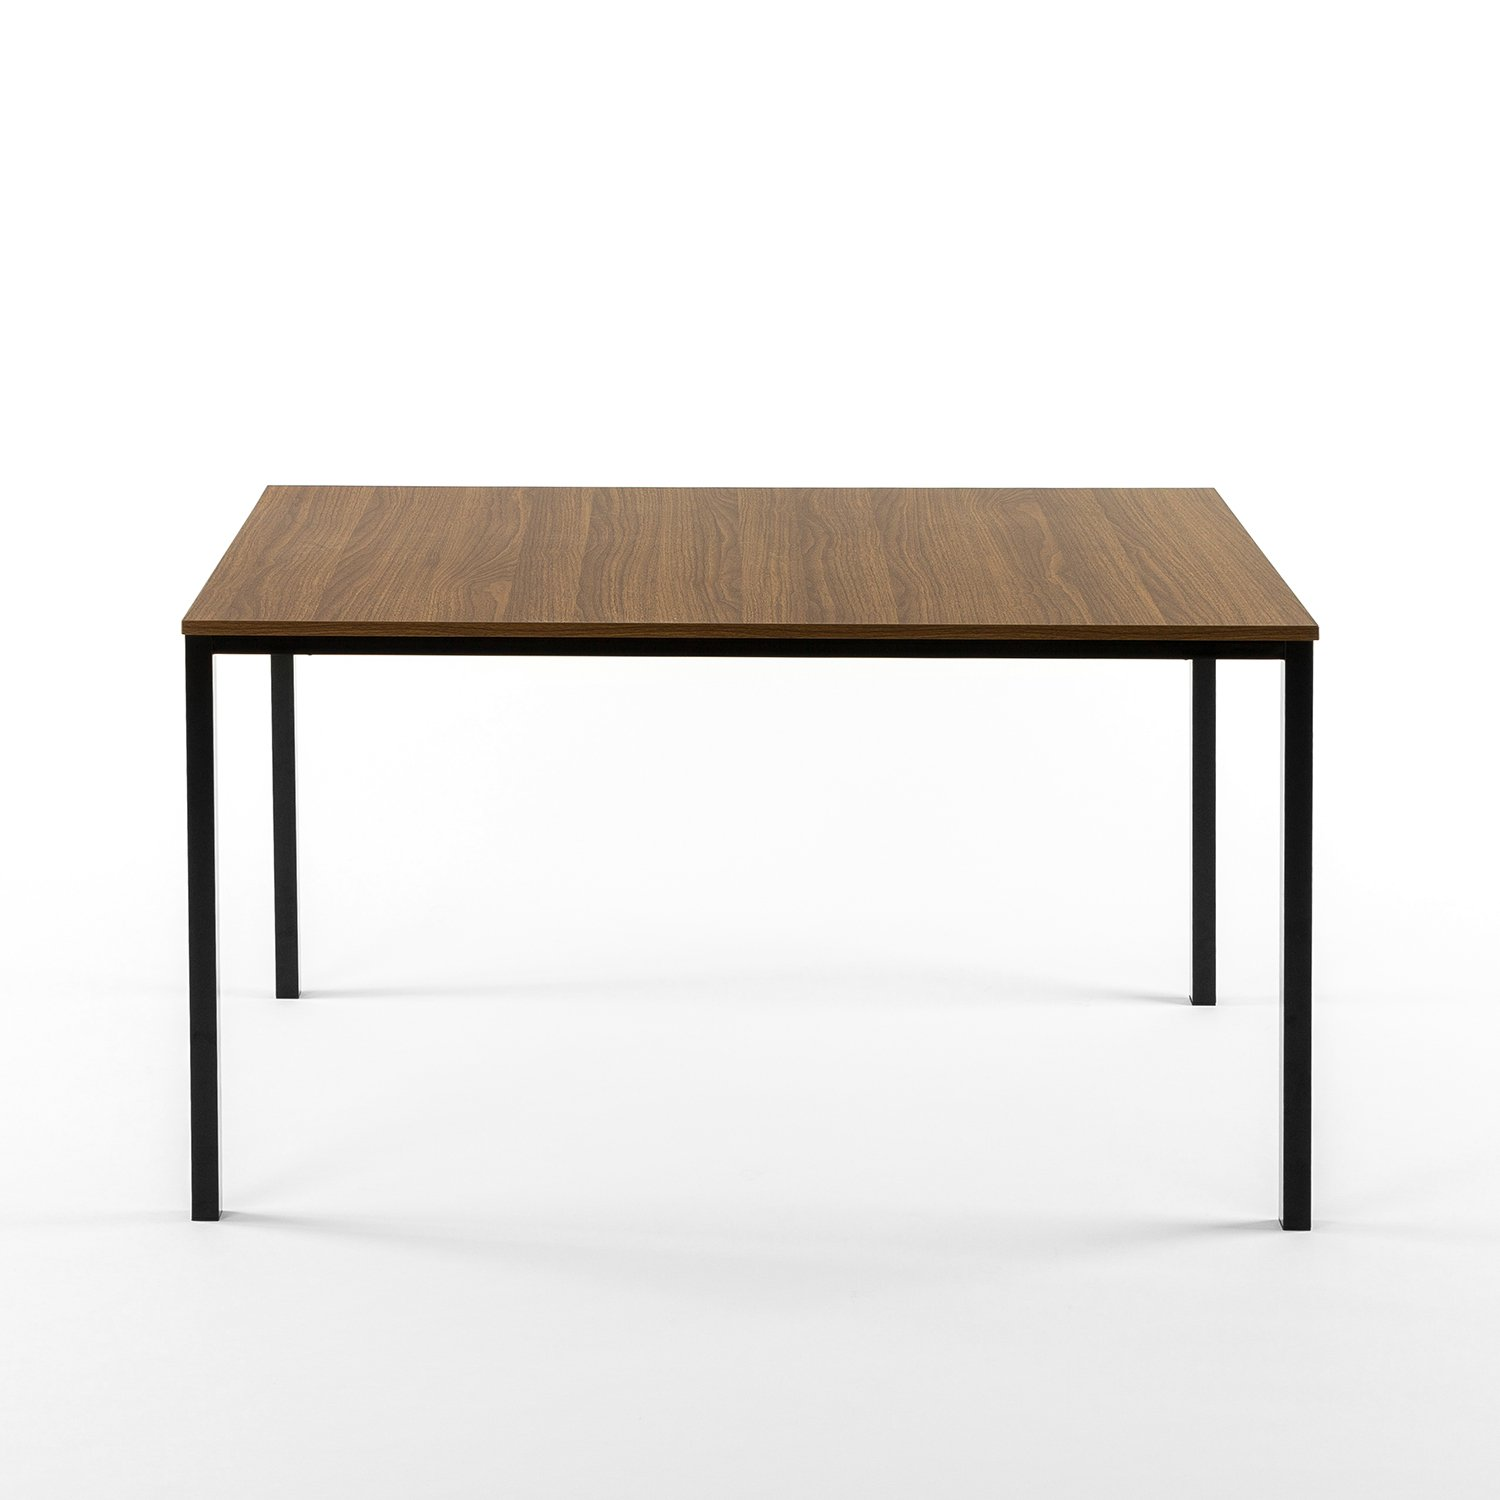 Zinus Modern Studio Collection Soho Dining Table/Office Desk/Computer Desk/Table Only, Brown by Zinus (Image #4)